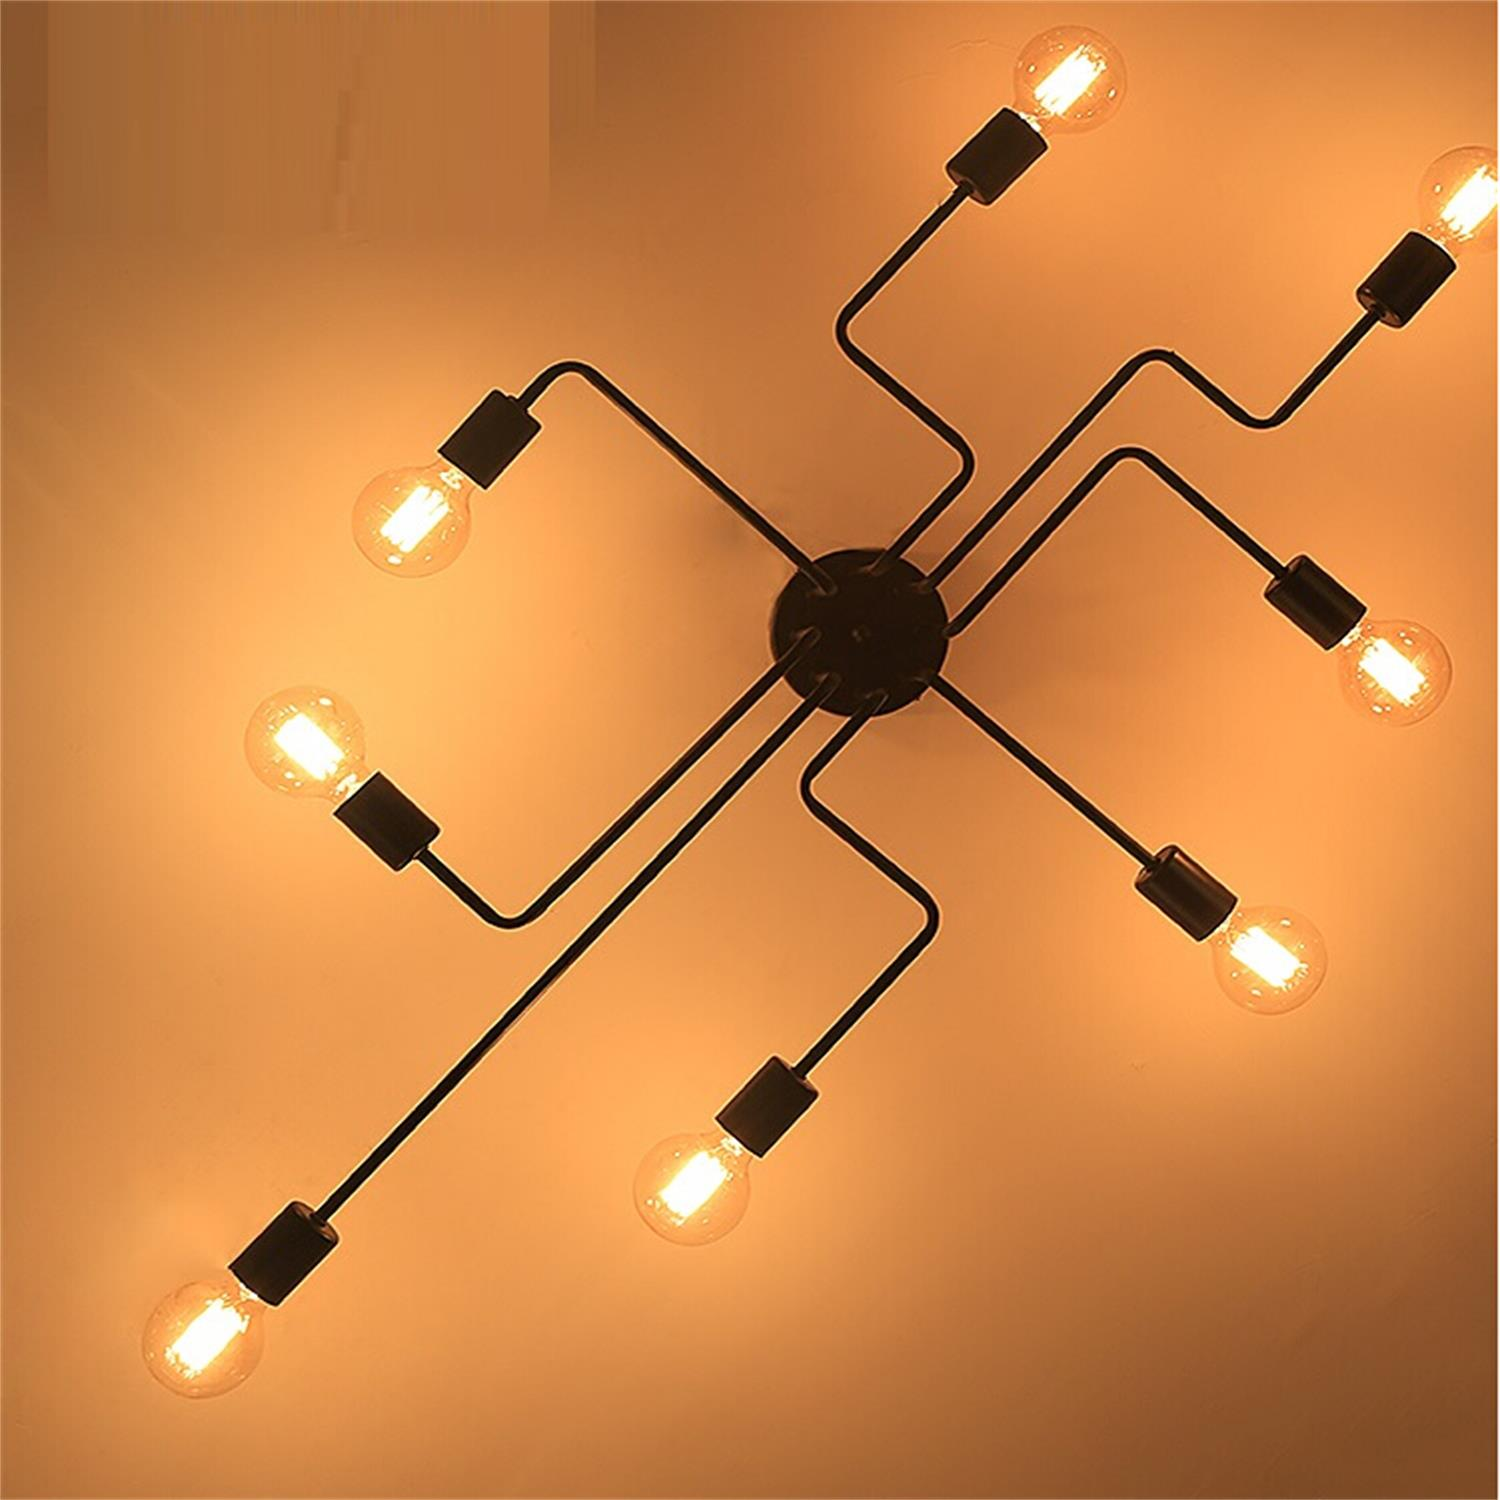 world a interiors chandelier metal spider light products classic brass